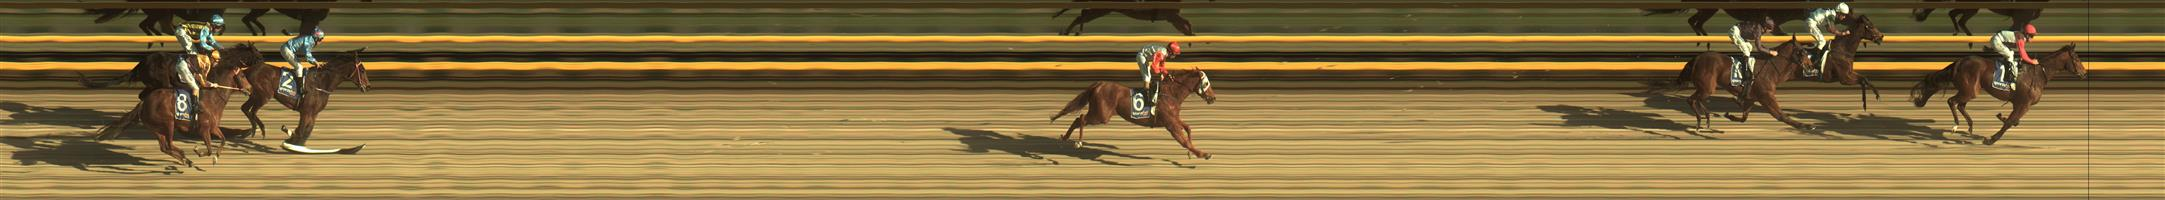 BALLARAT SYNTHET Race 4 No. 9 Yitai Loyalty  Result : 2nd at SP $3.50. After leading for majority of the race was overtaken with about 200m to go and couldn't fight back to finish in second by about a length. Outcome -1.50 Units.